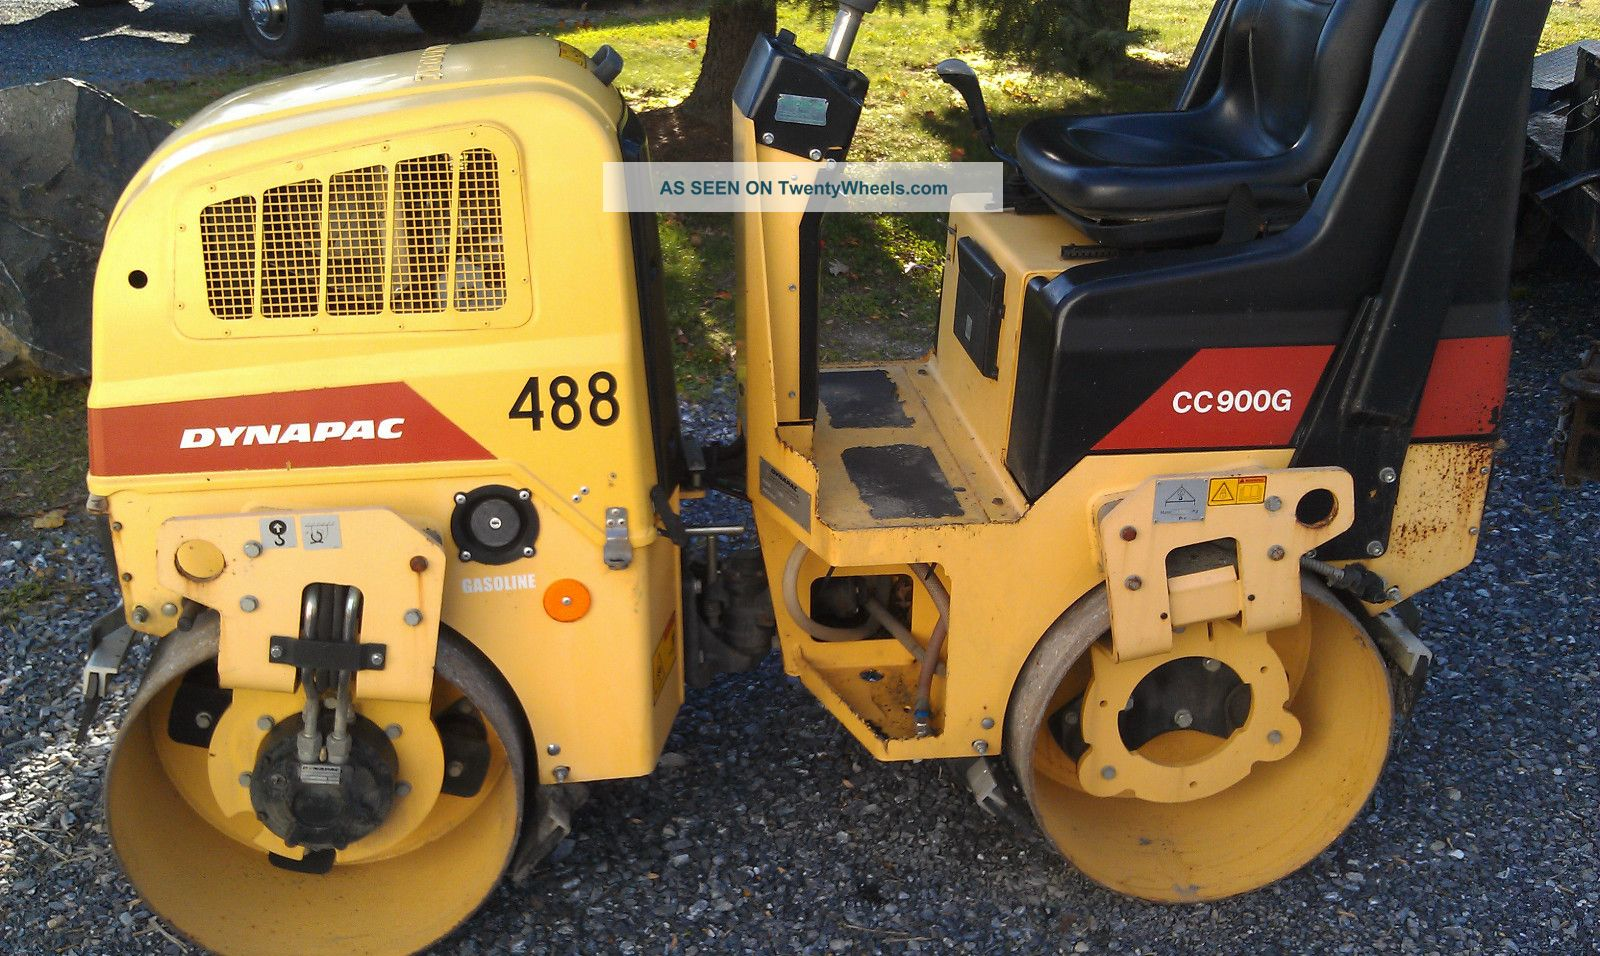 2007 Dynapac Cc900g Tandem Vibratory Smooth Drum Roller Compactors & Rollers - Riding photo